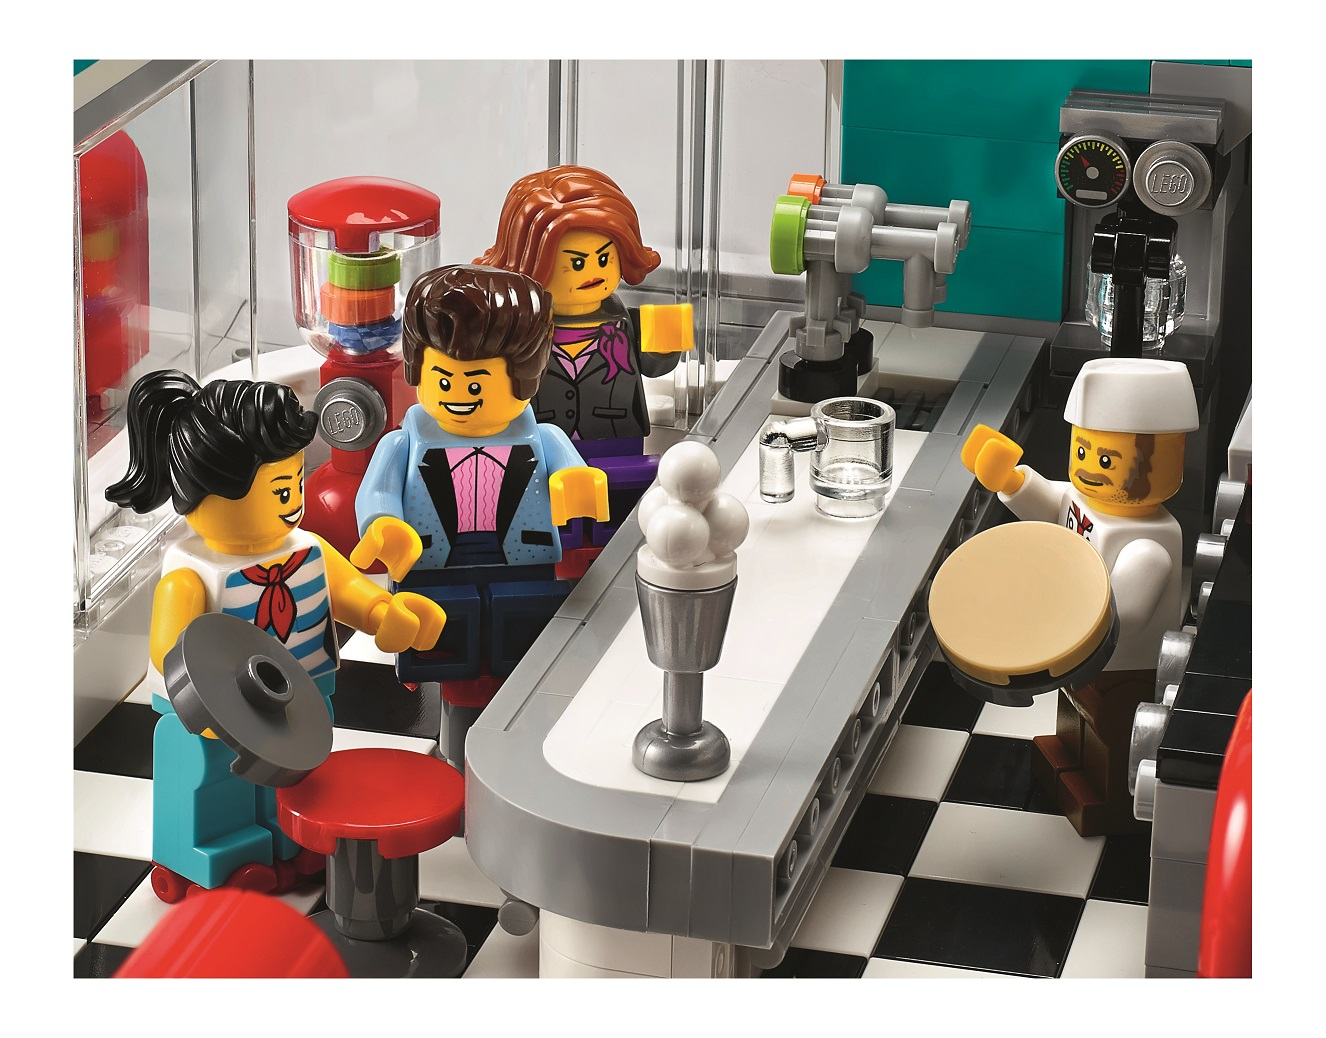 Here S A Look At Lego 10260 Downtown Diner The First